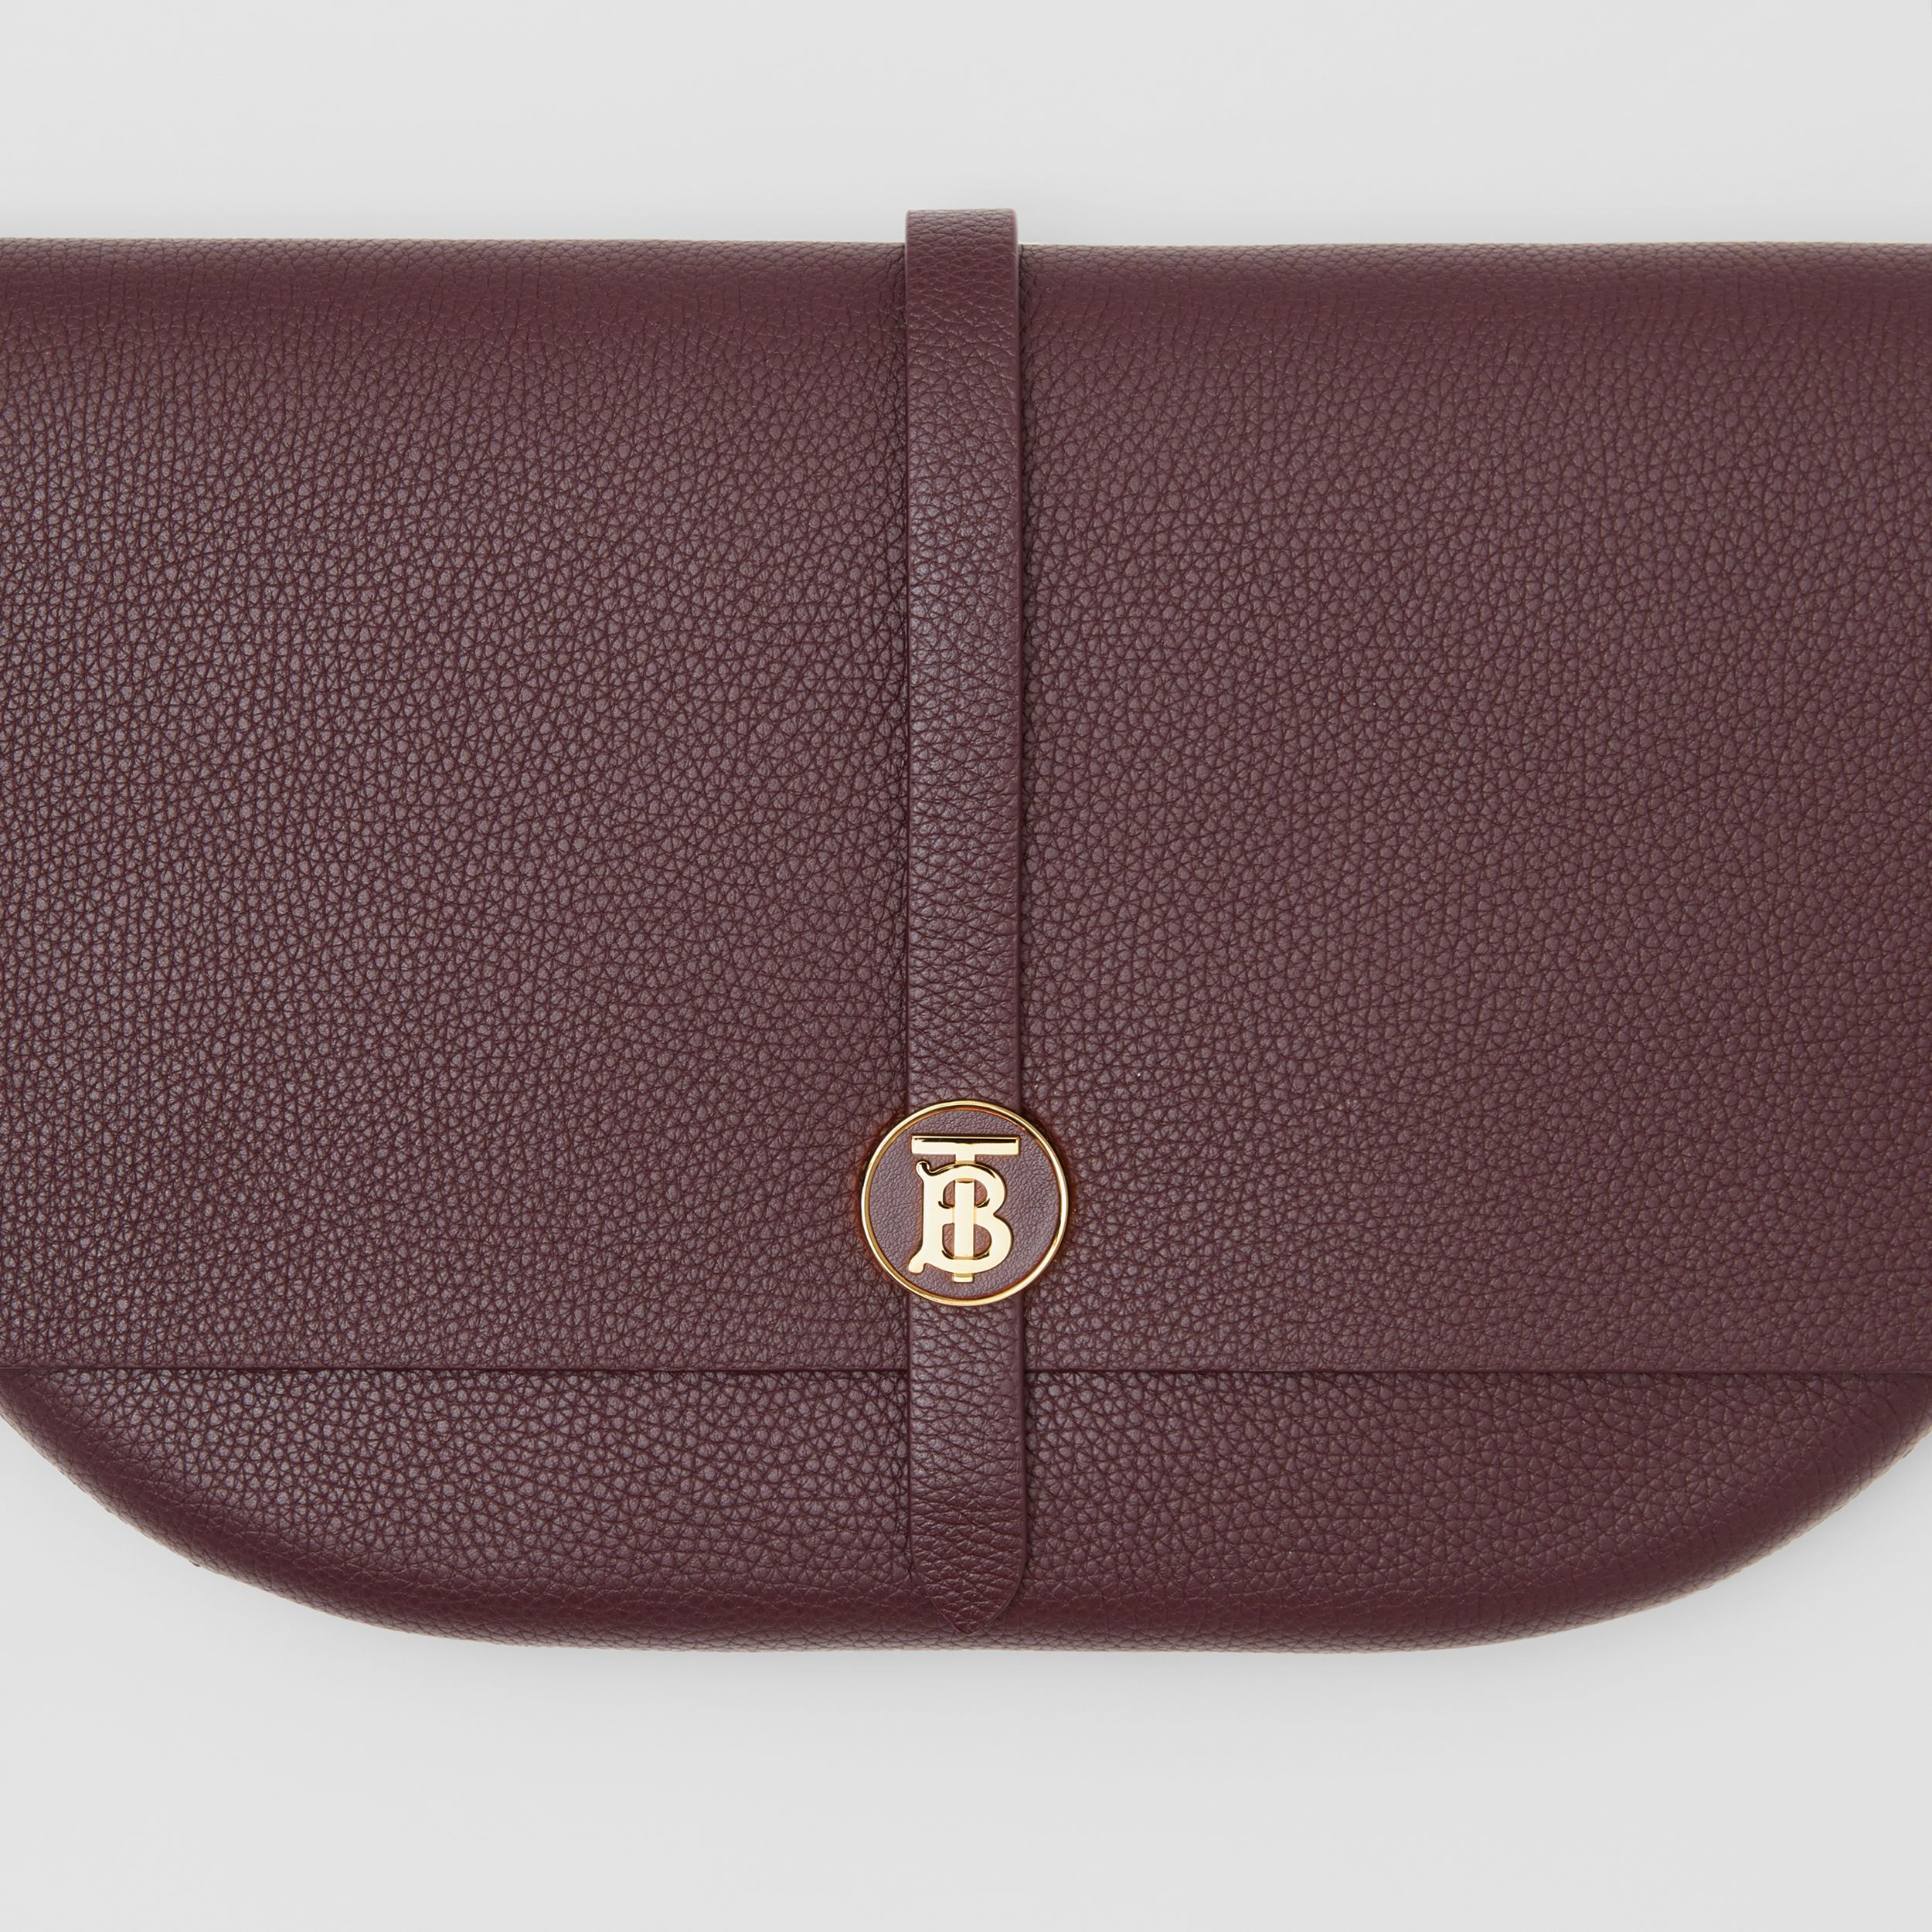 Grainy Leather Anne Clutch in Dark Walnut - Women | Burberry - 2